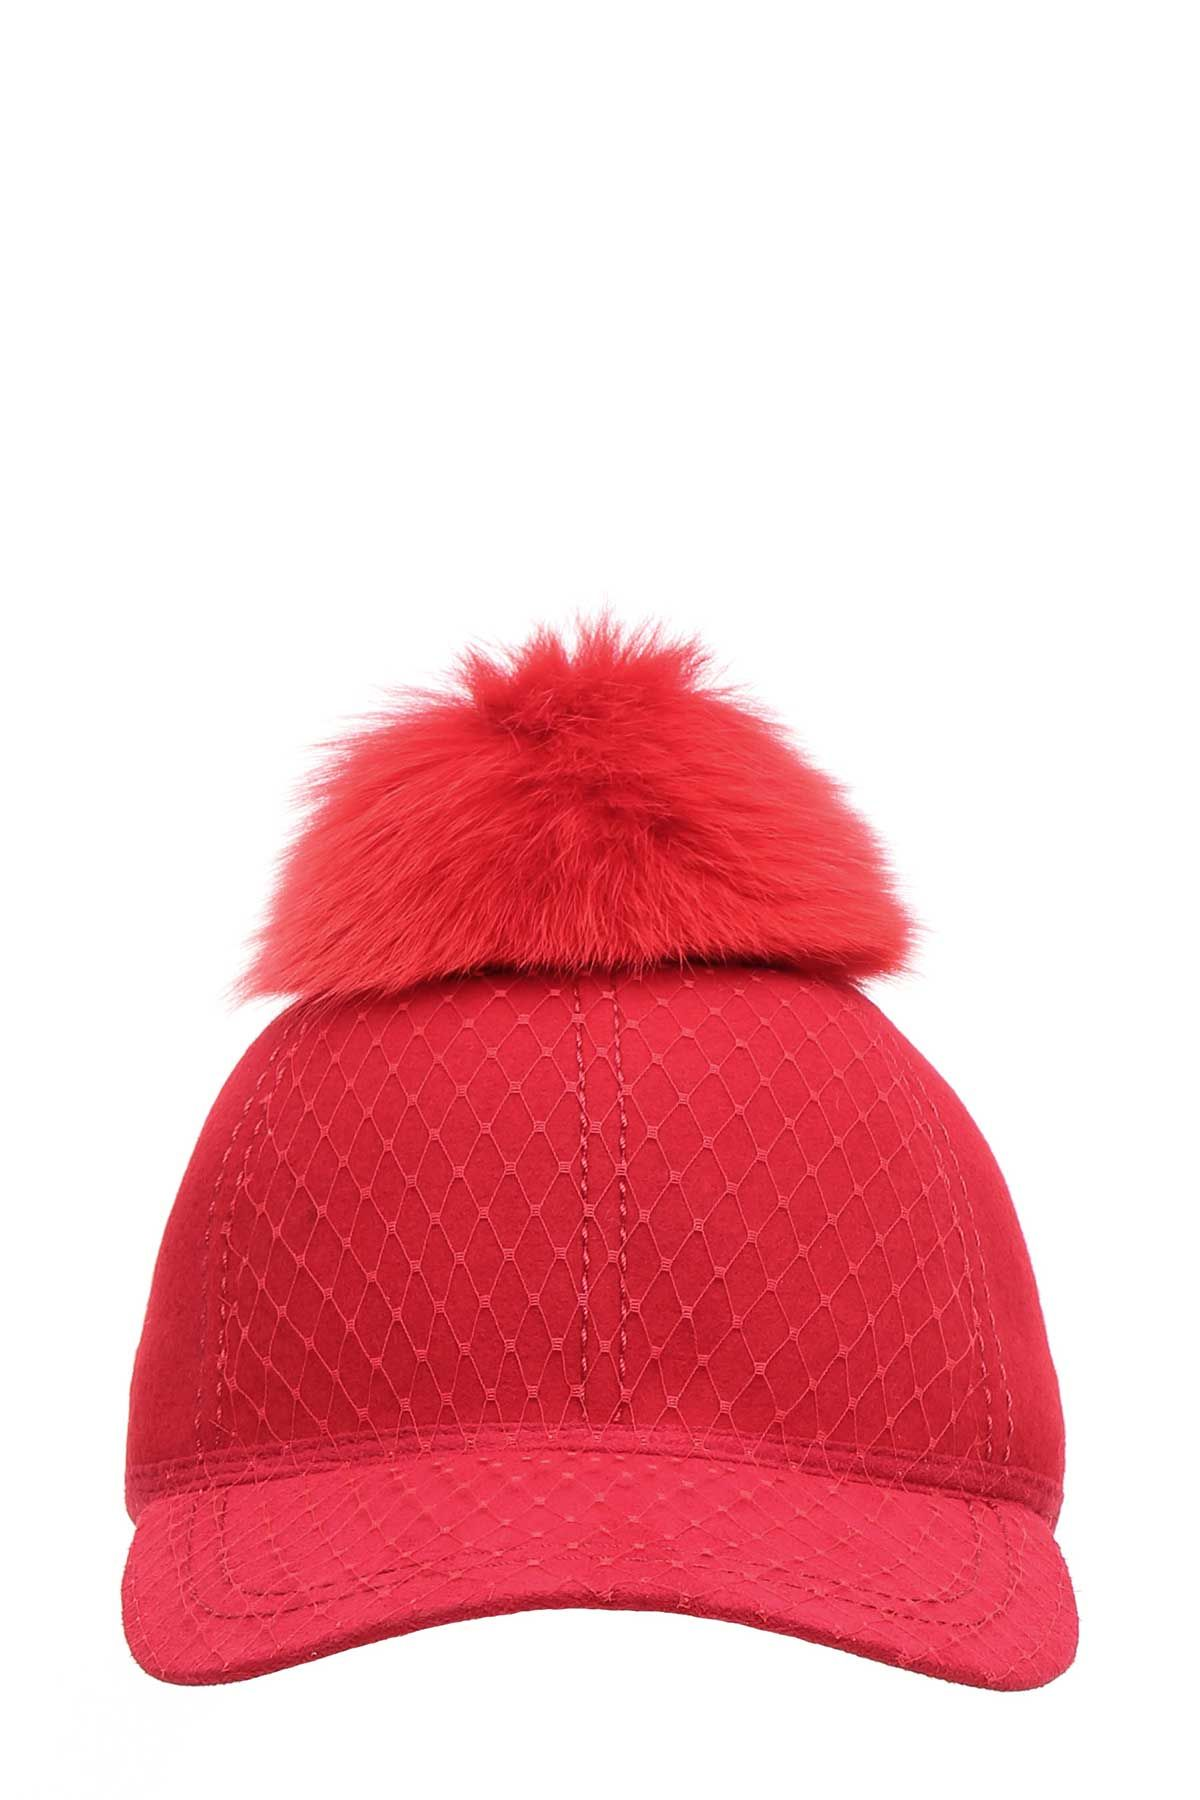 house of lafayette female house of lafayette wool cap with fur pom pom